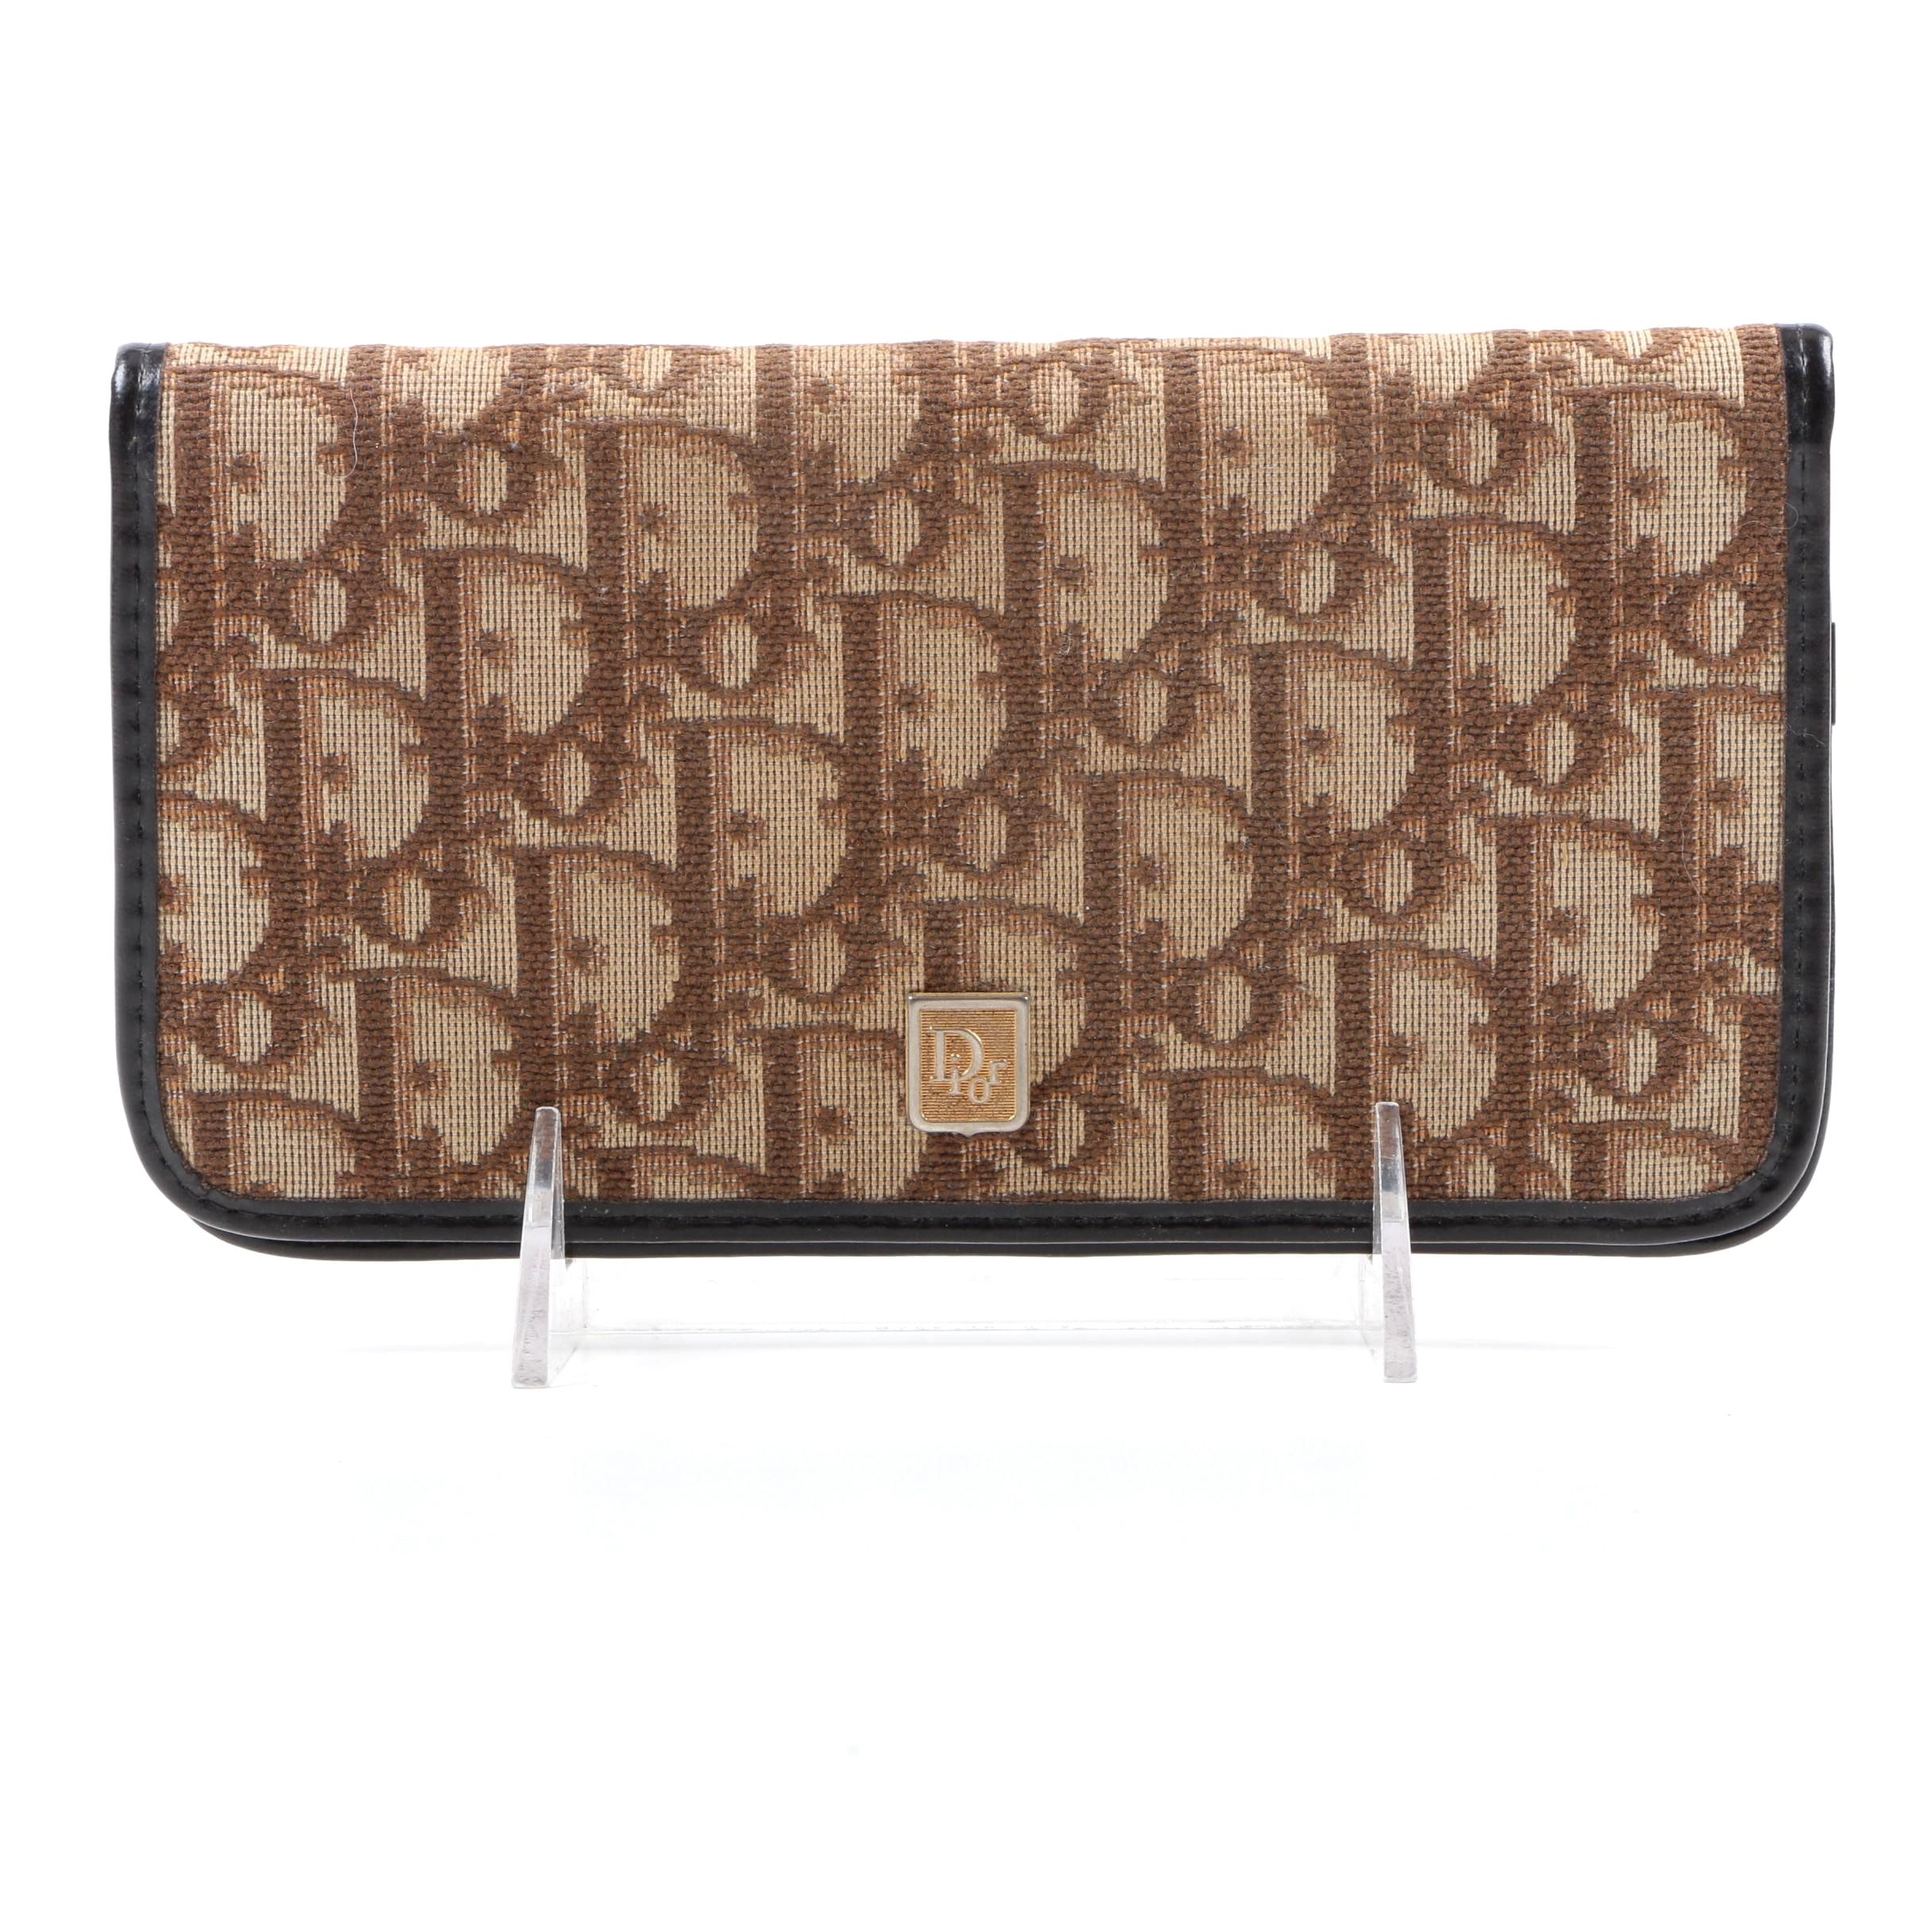 Christian Dior Monogram Canvas and Leather Checkbook Cover